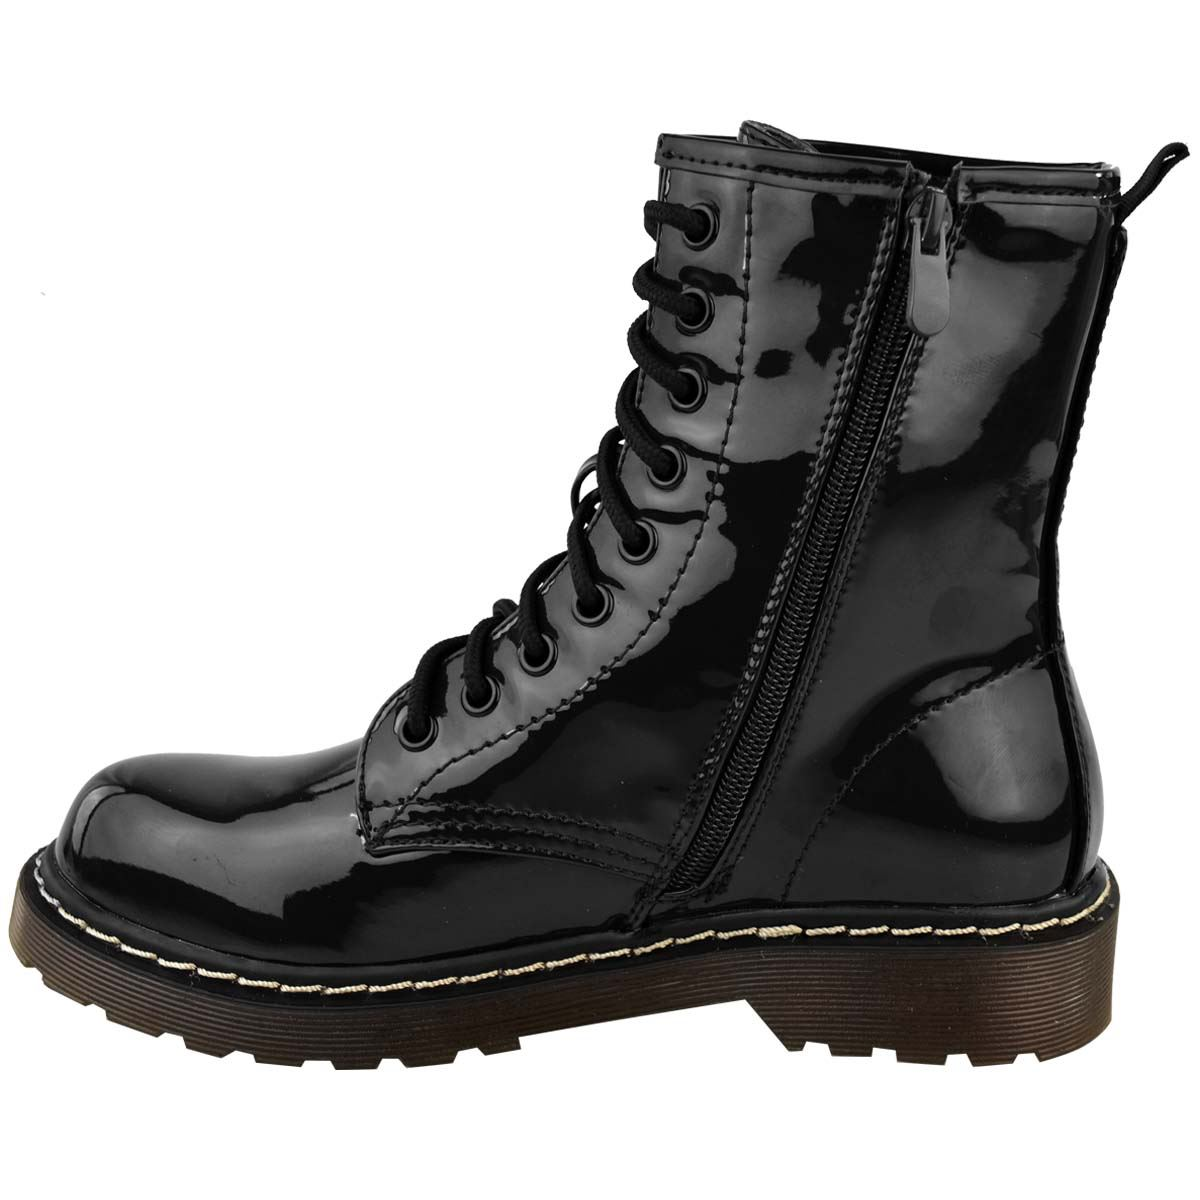 Womens-Doc-Ankle-Boots-Black-Faux-Leather-Patent-Lace-Up-Flat-Work-Army-Air-Goth thumbnail 5